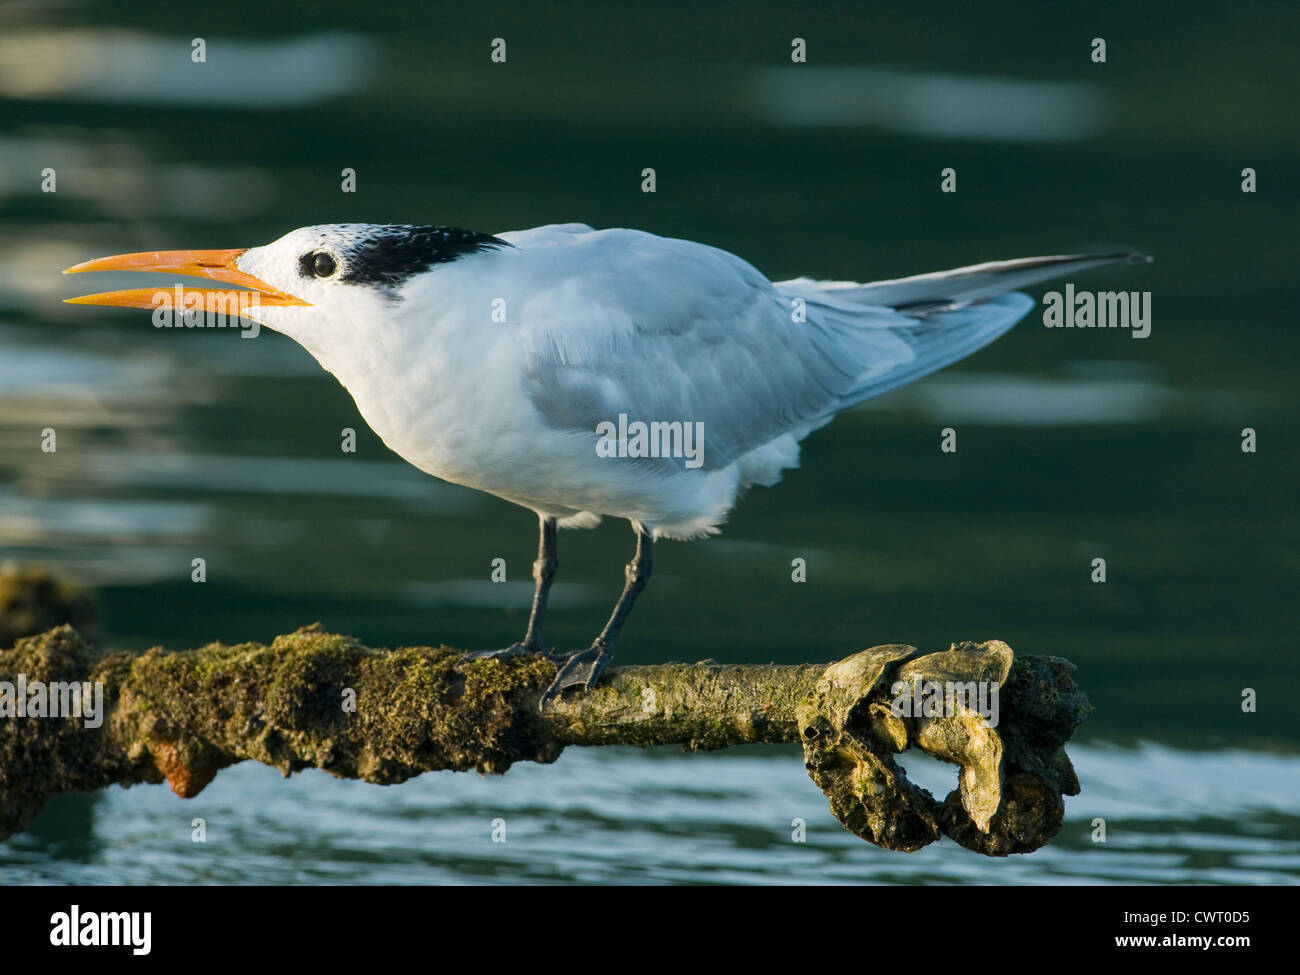 Royal Tern (Sterna maxima) roosting on abandoned dock, Haitises National Park, Dominican Republic - Stock Image